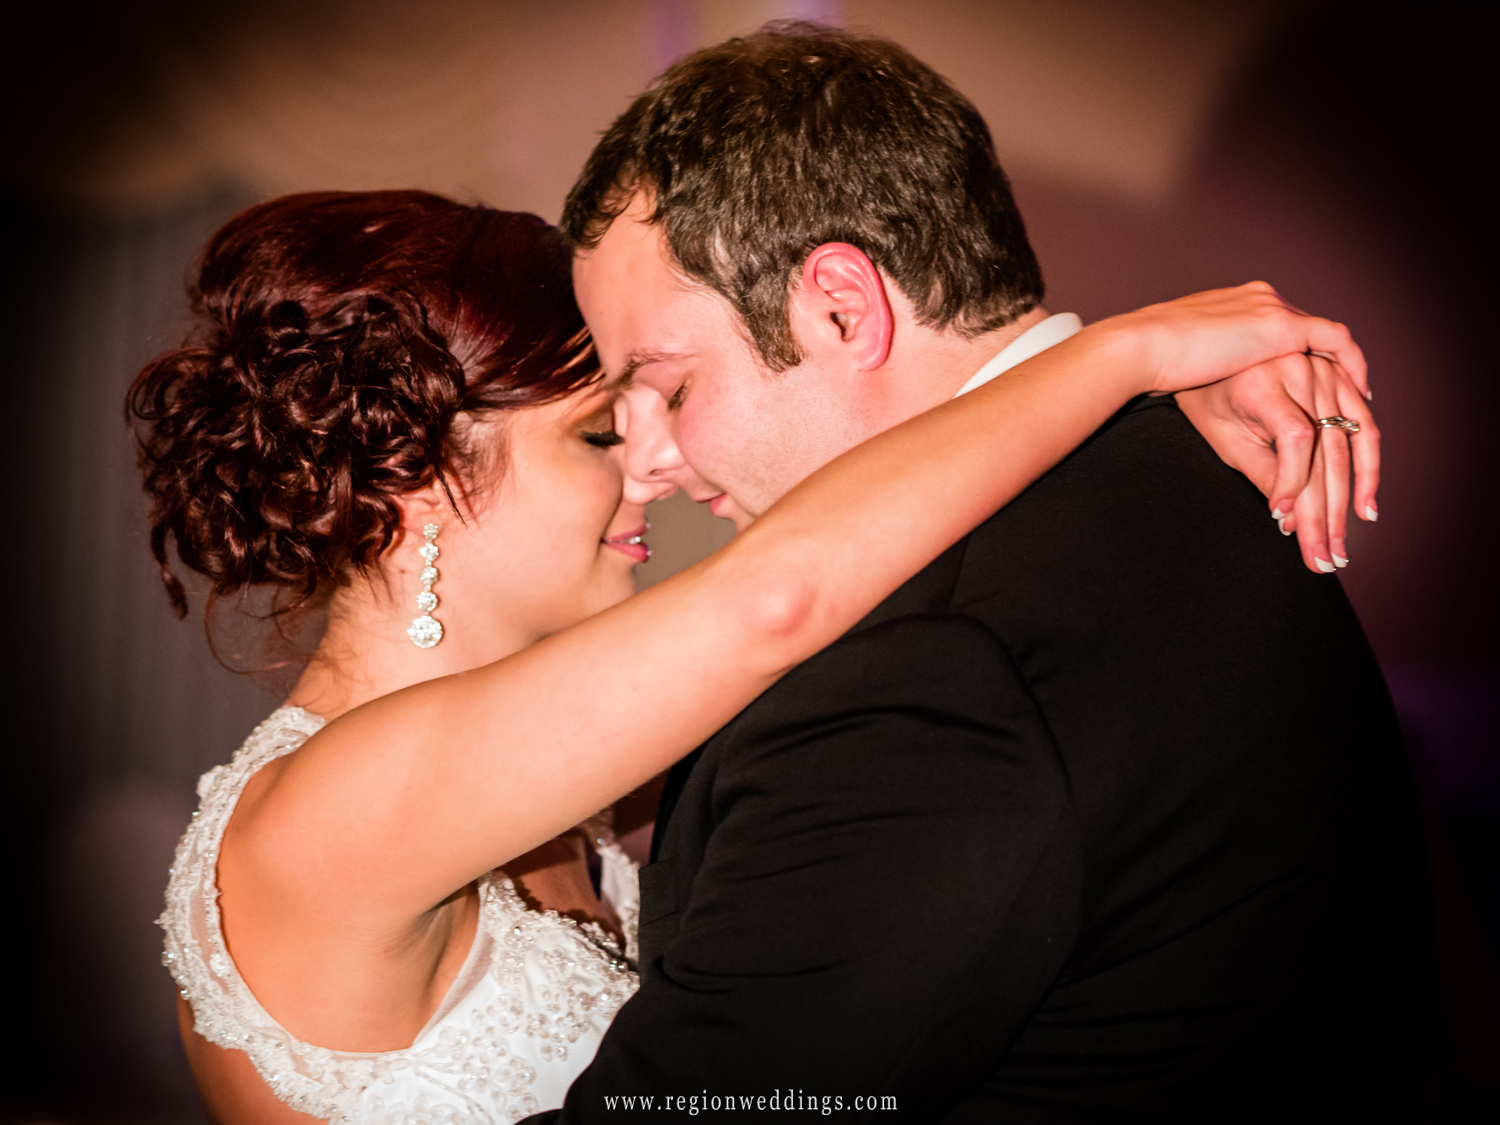 The bride and groom take their first dance during their wedding reception at The Dream Palace in Lynwood, Illinois.